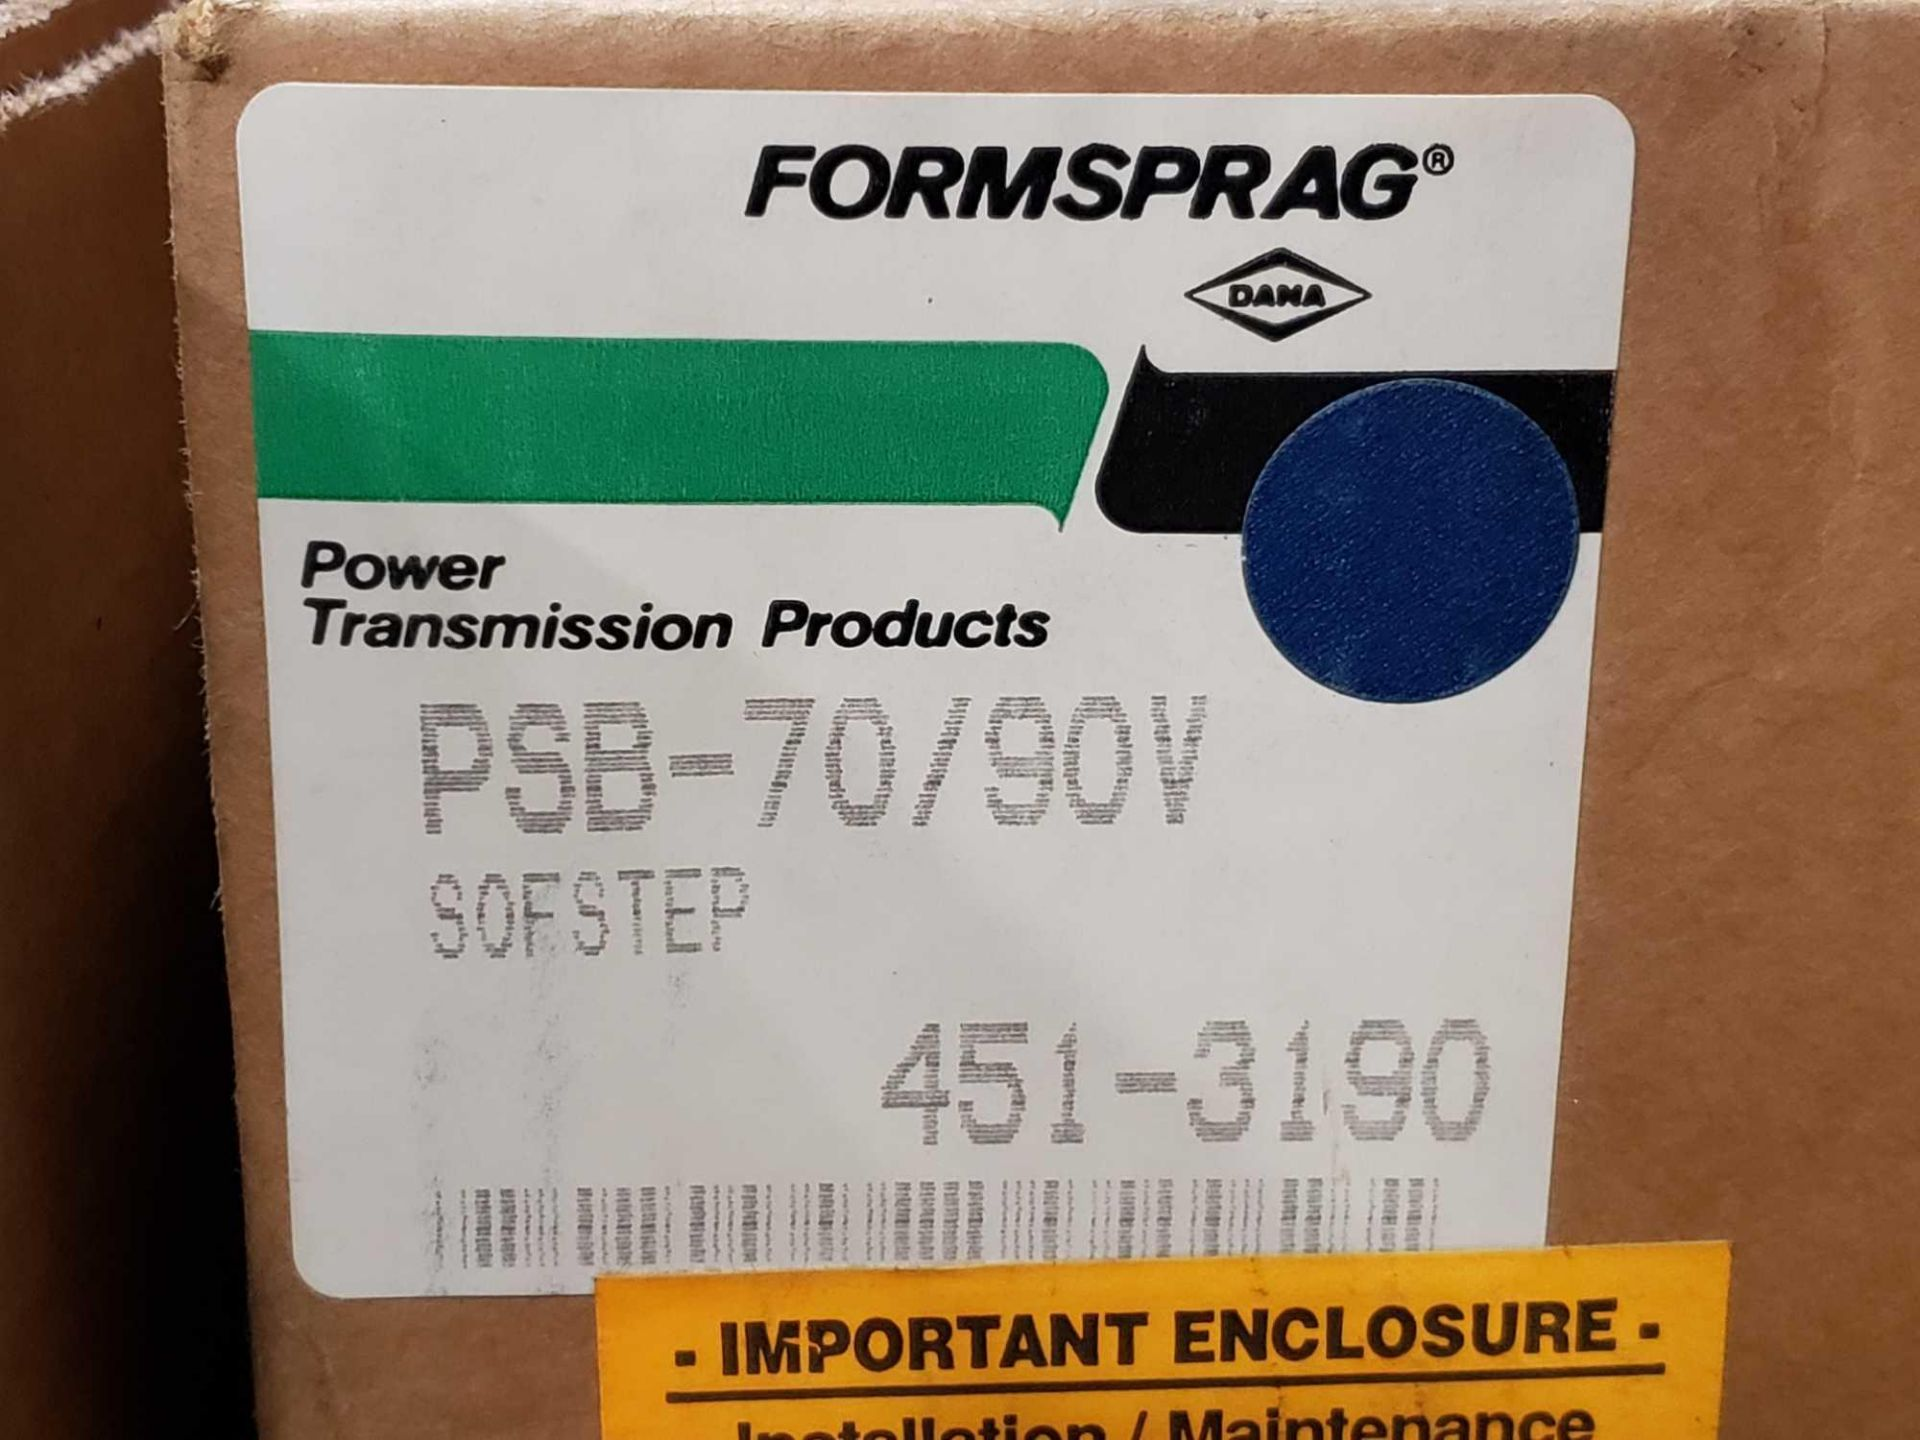 Lot 5 - Formsprag Magpowr sofstep model PSB-70/90V magnetic partical clutch brake. New in box.